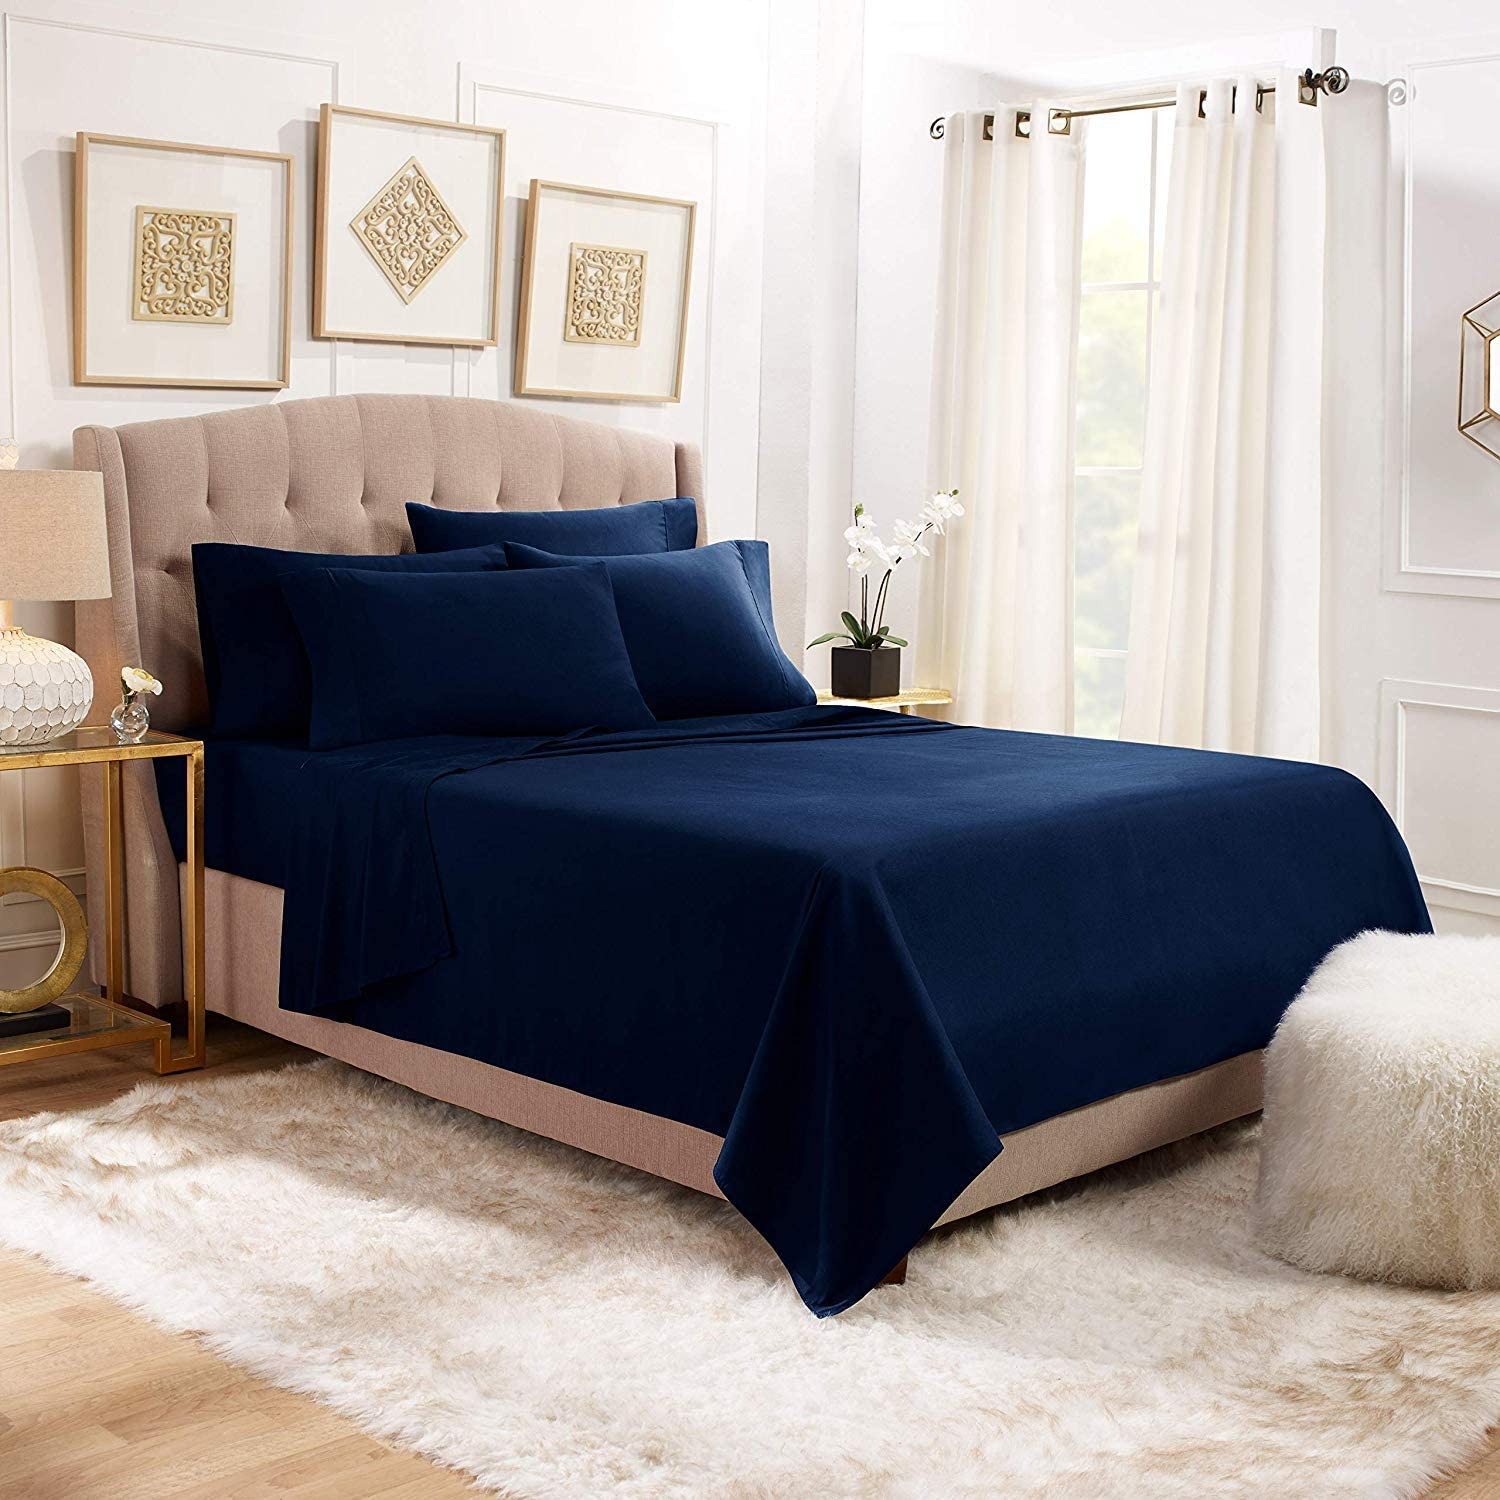 Hotel Collection Luxurious & Soft 4 pc Sheet Set Long Stapple, 1200 TC 100% Pure Natural Cotton Sateen Weave, Hotel Linen Bedding Sets,14-15 inch Deep Pocket, (California King Color Navy Blue)